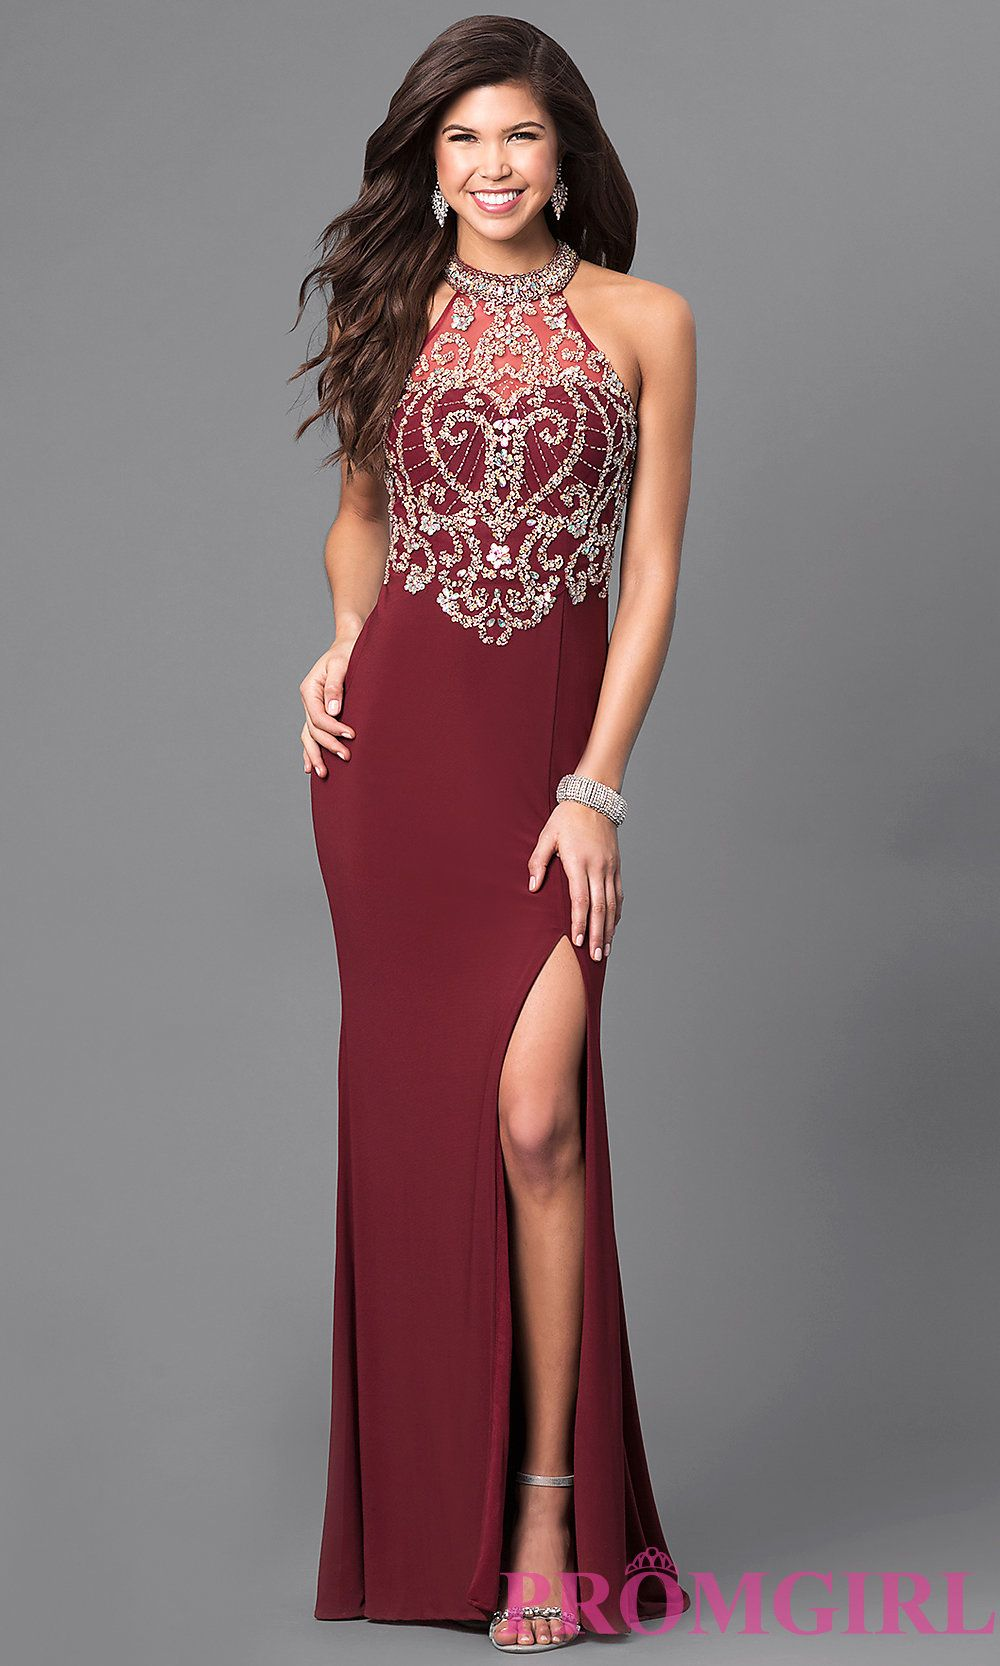 I like style lnspj from promgirl do you like promgirl